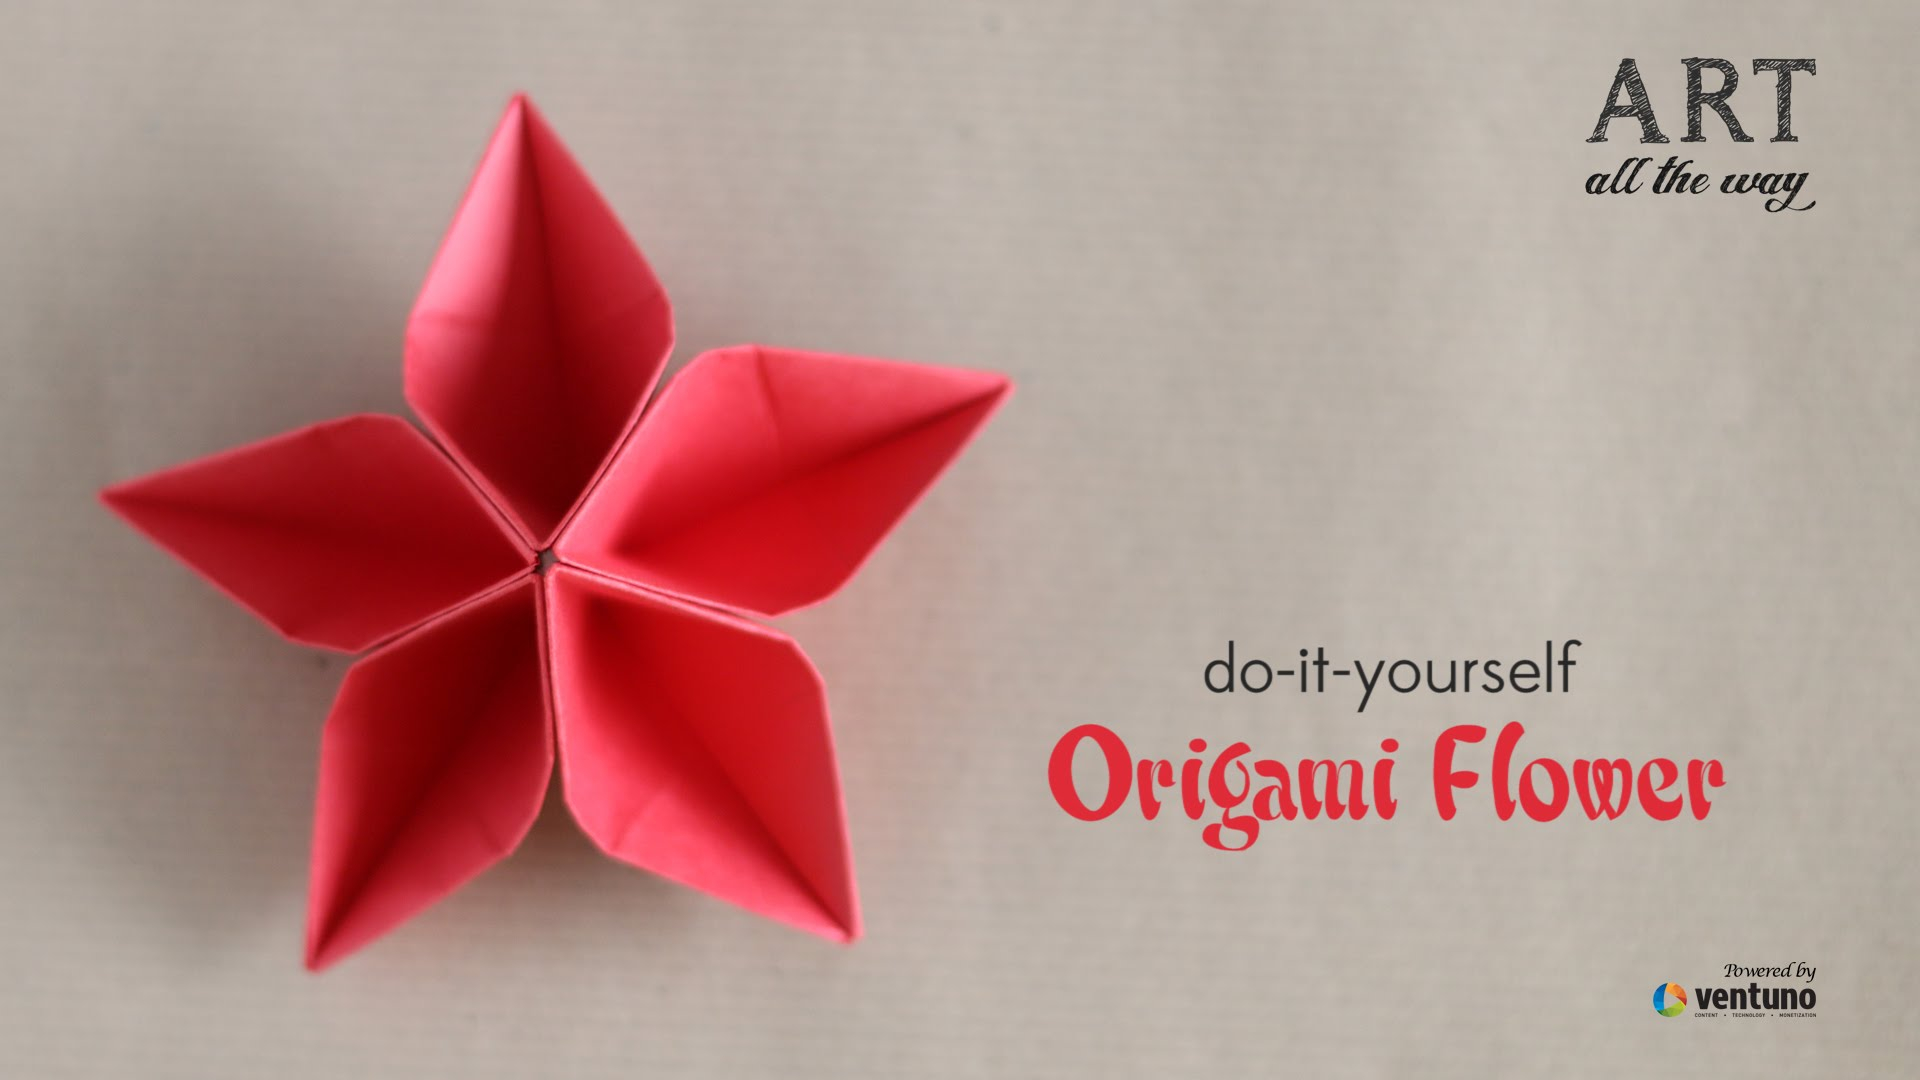 Diy Origami Flowers How To Fold Origami Flower Do It Yourself Youtube